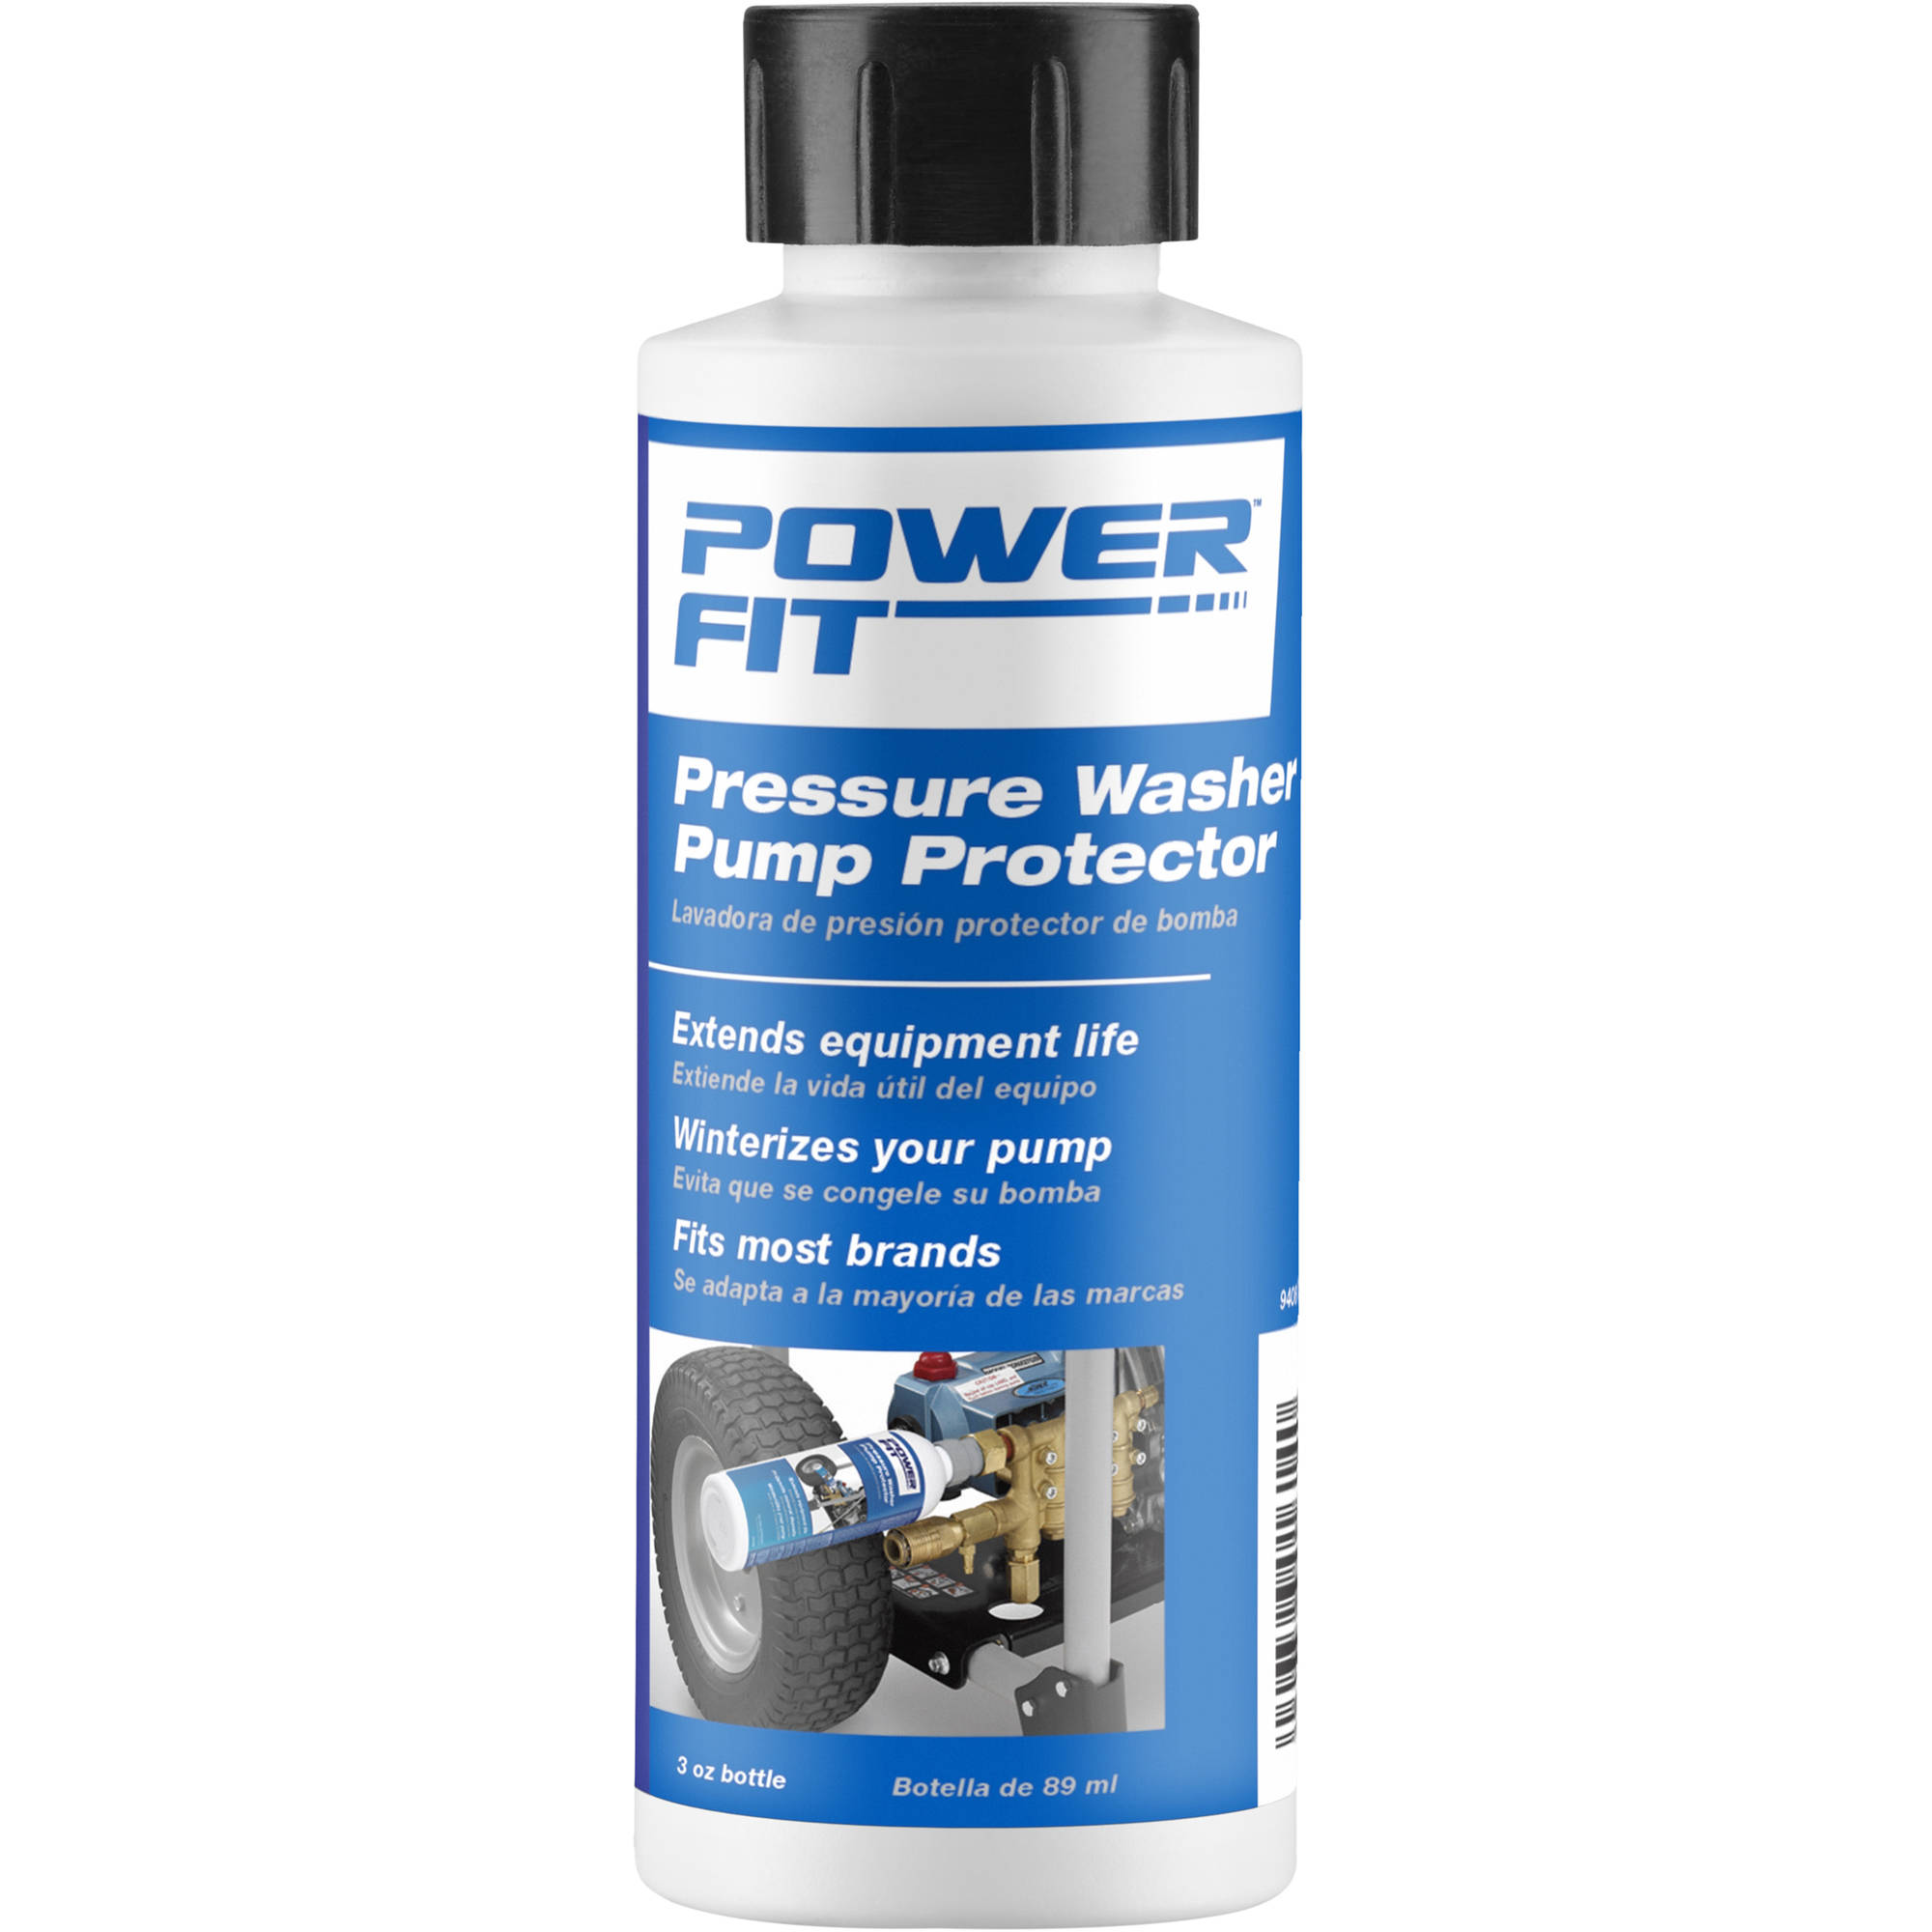 Powerfit 3-oz Power Washer Pump Protector